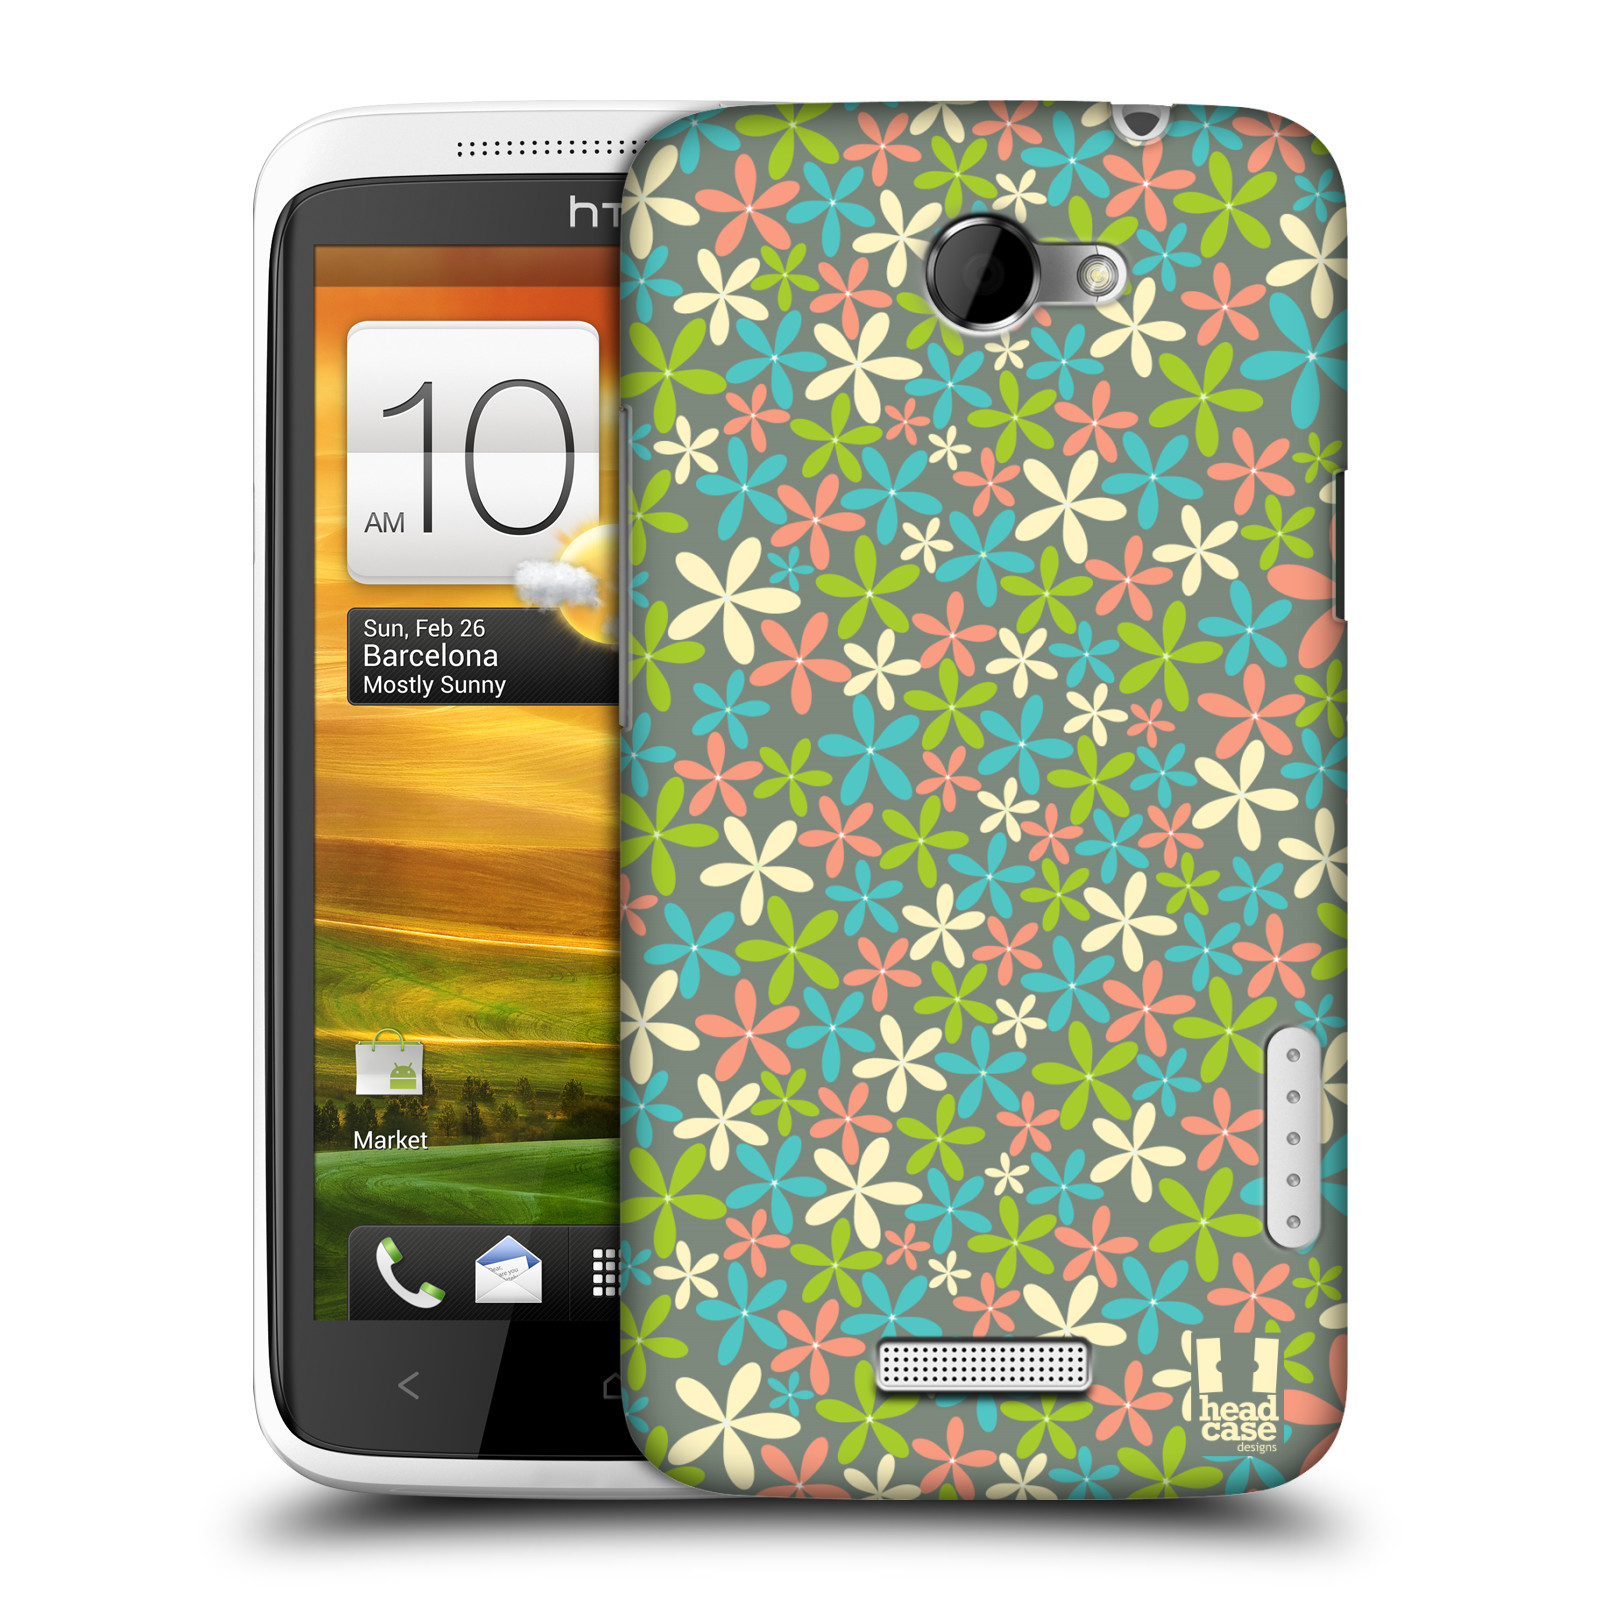 HEAD CASE DESIGNS DITSY FLORAL PATTERN CASE COVER FOR HTC ONE X